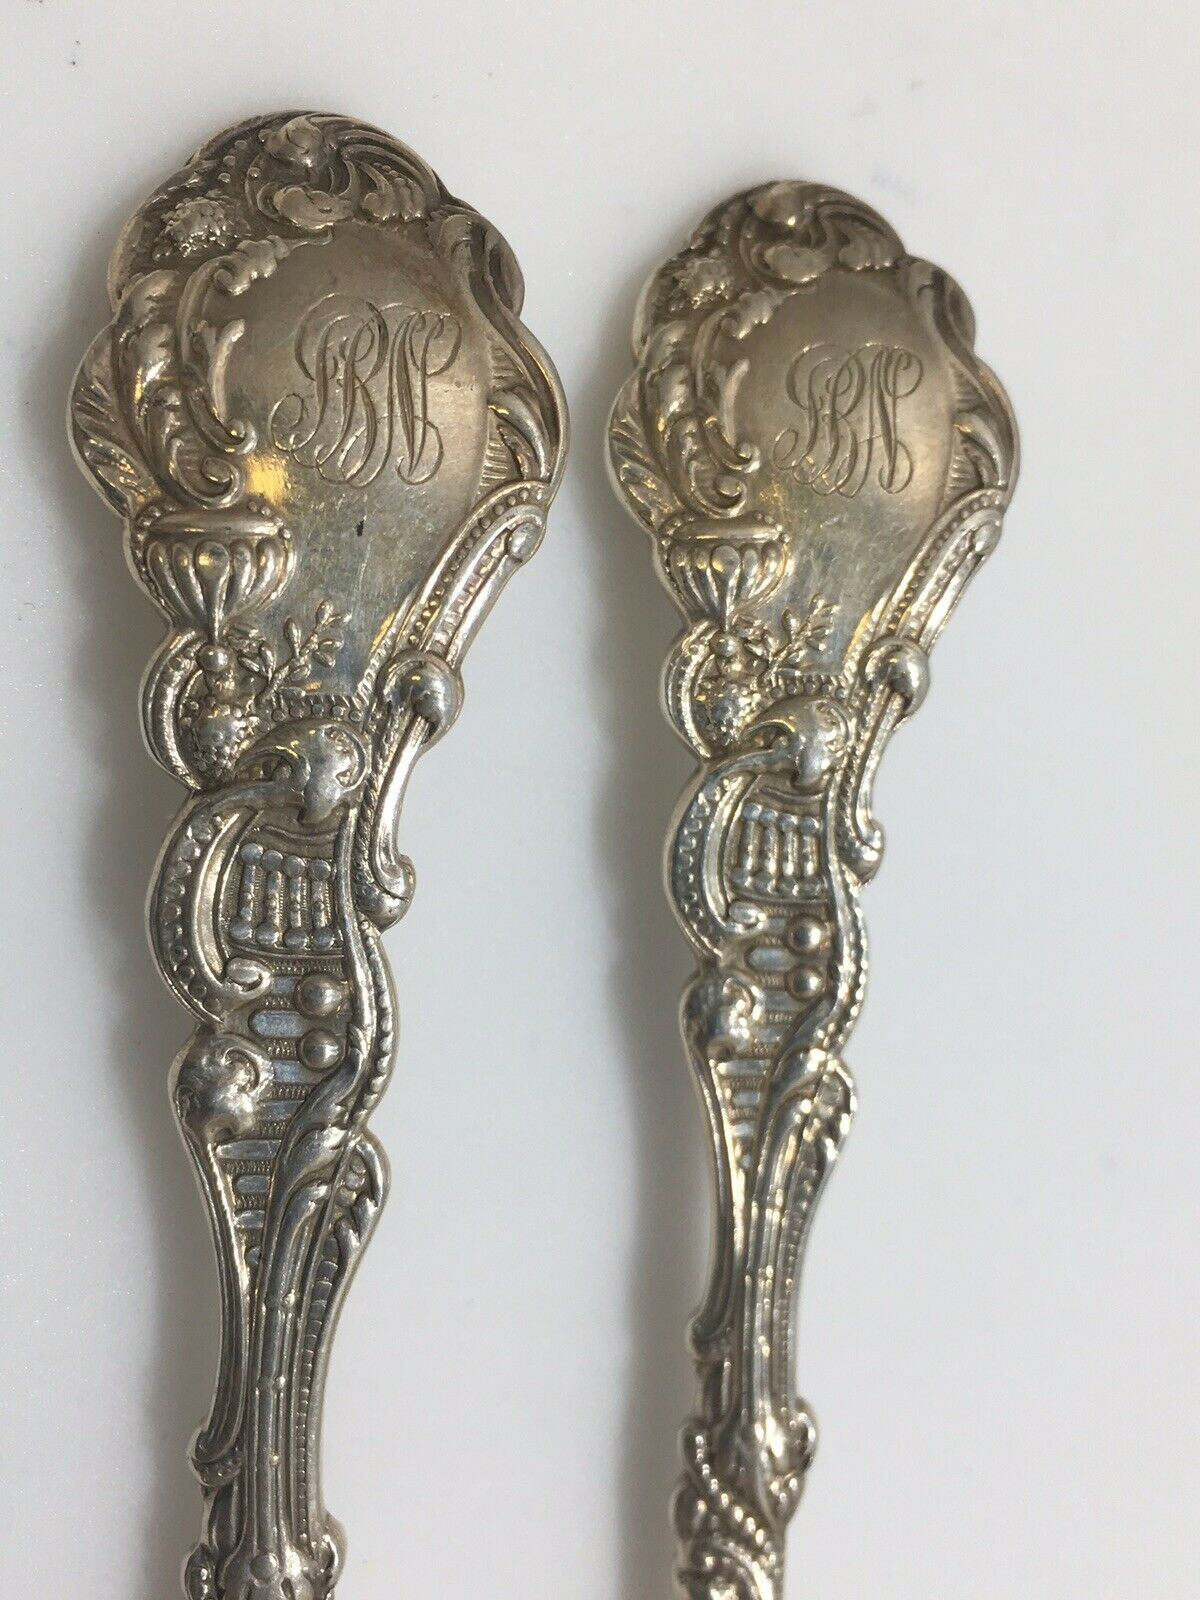 11 Antique Gorham Versailles Grapefruit  Citrus spoons